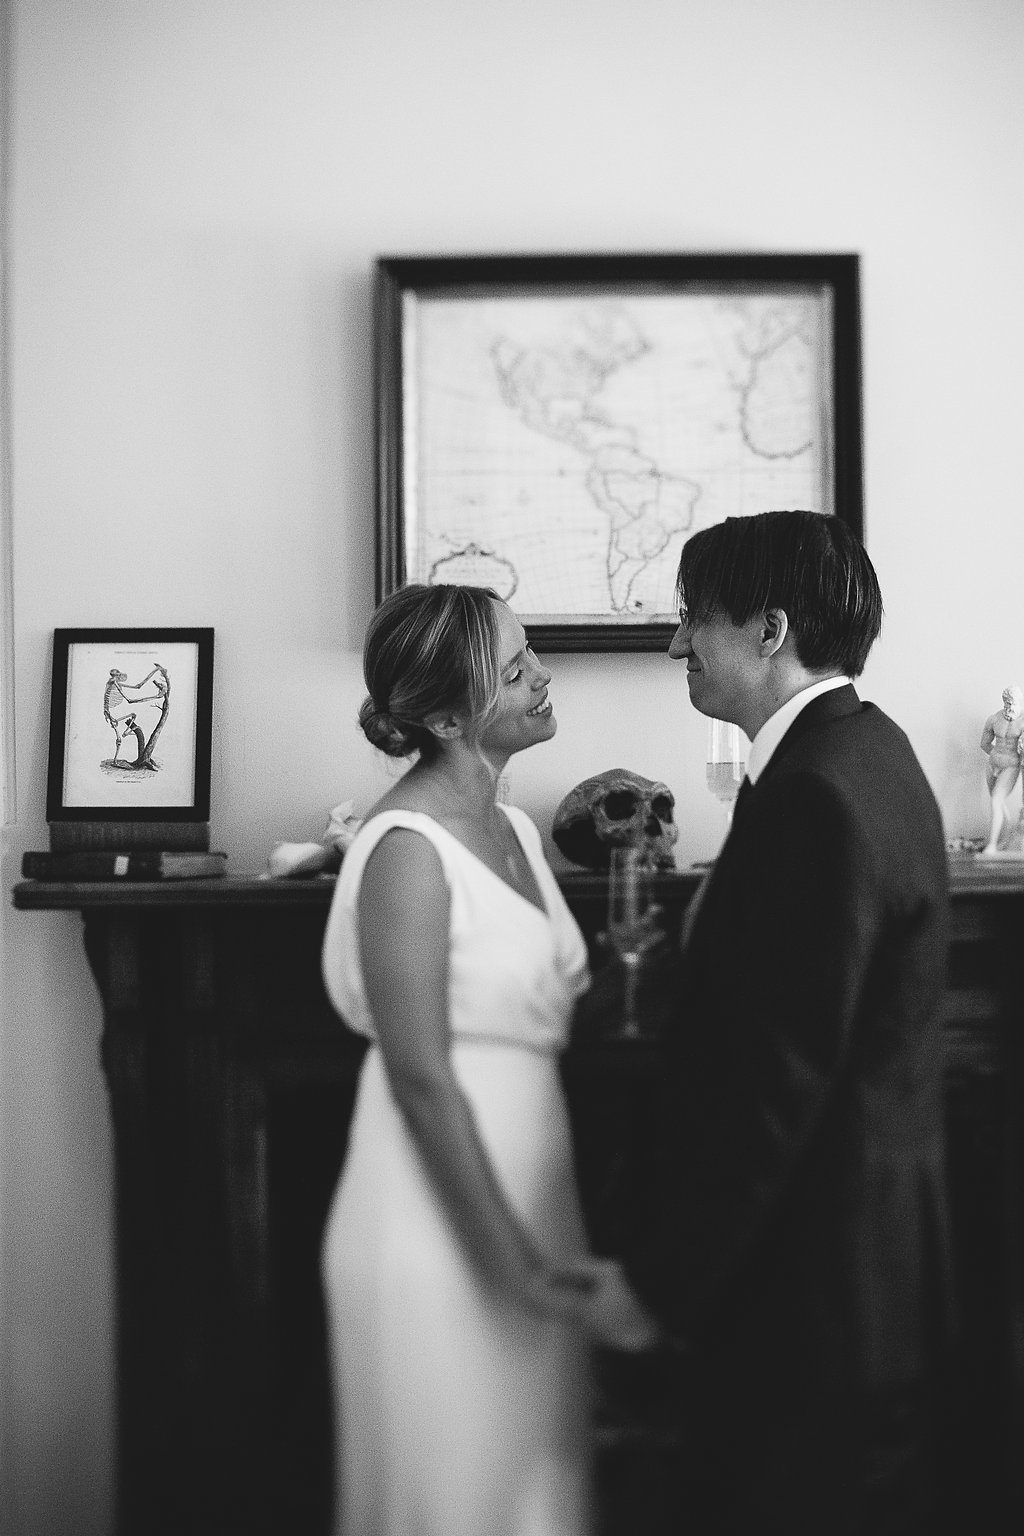 Wedding day in Washington, D.C.